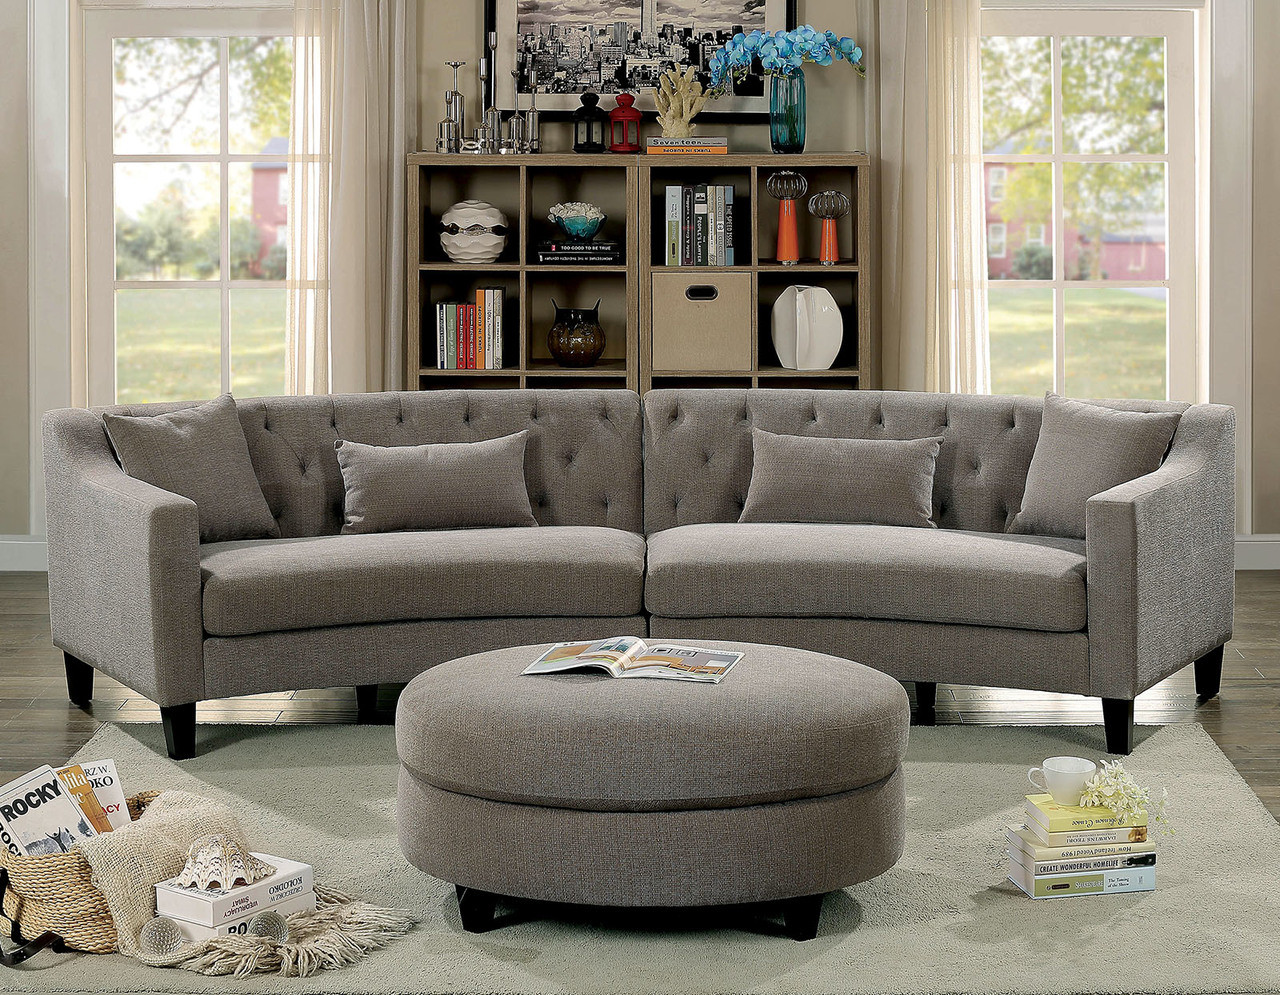 Lovely Furniture Of America CM6370 Fabric Corner Sofa Set | SARIN Warm Gray Fabric  Curved Sectional Ottoman ...